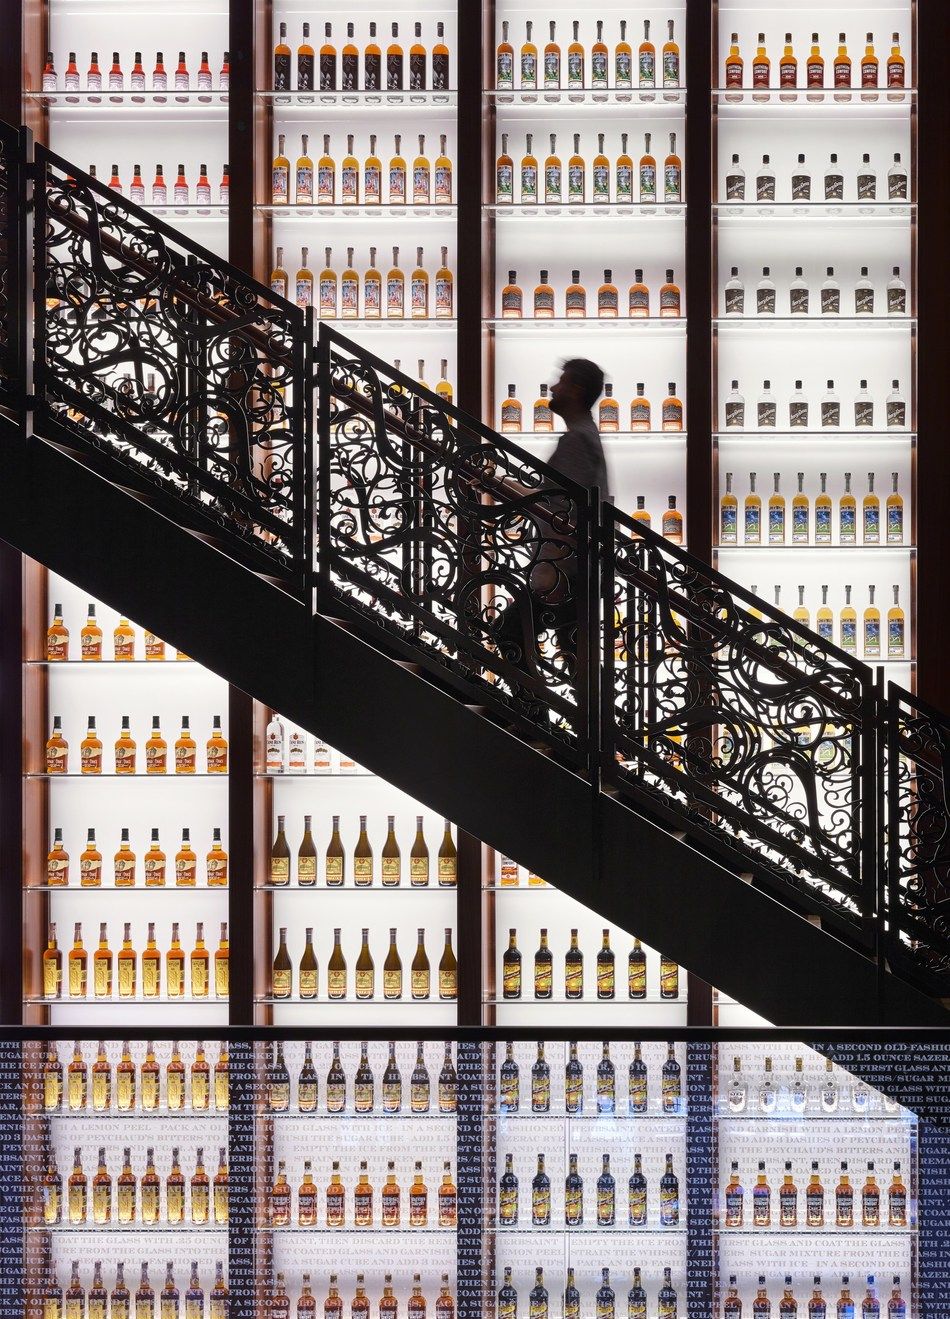 "Detail of staircase and bottle wall. Contemporary methods and materials evoke the spirit of 1880s architecture and reveal the historic character of the buildings while making clear what's new. The three-story display wall featuring Sazerac bottles is back-lit to draw the attention up through the building and to the upper floors. Plasma-cut steel panels with cutout ""S"" shapes and star anise flowers take inspiration from the brand. Architecture by Trapolin-Peer Architects. ©️ Alan Karchmer/OTTO"